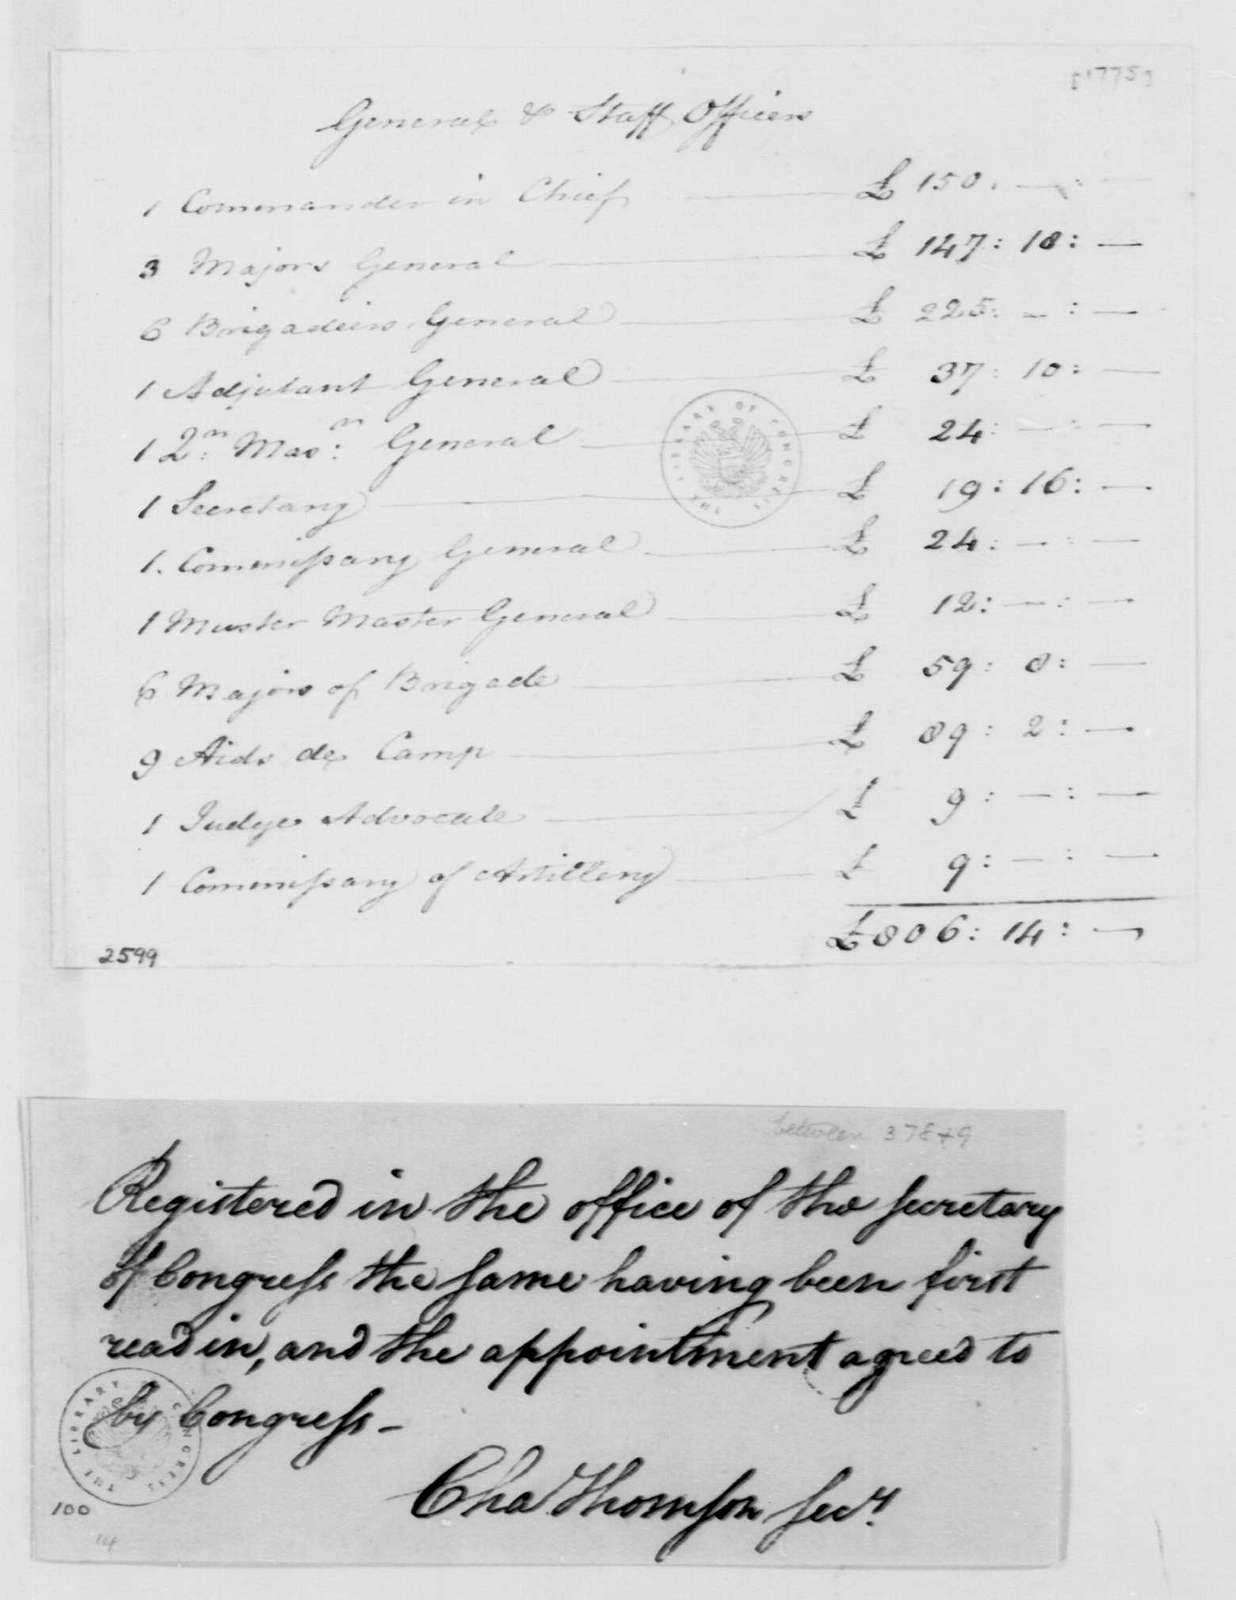 George Washington Papers, Series 4, General Correspondence: Horatio Gates, 1775, Officers Pay Schedule